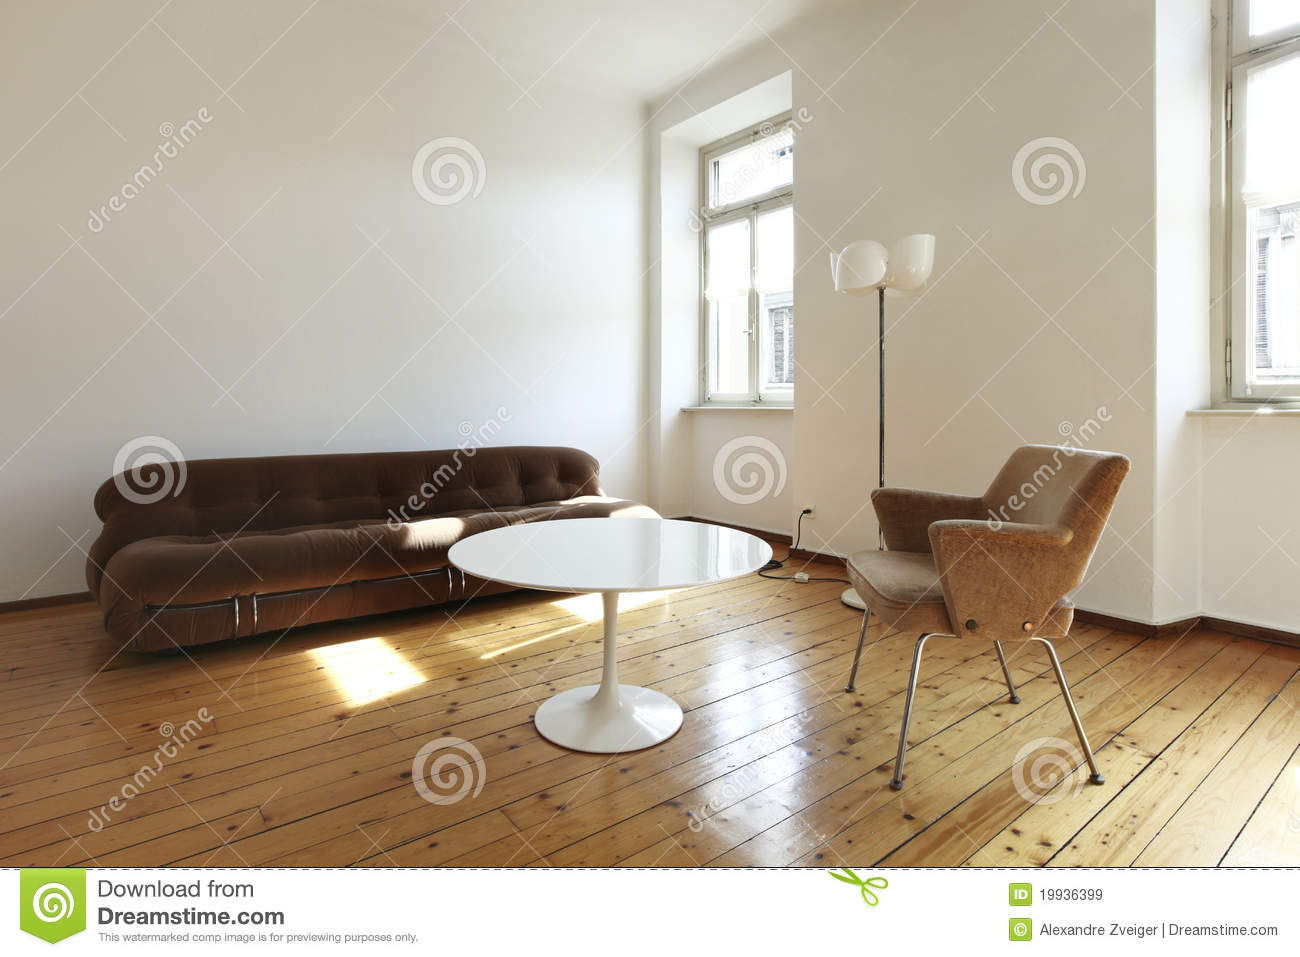 Retro style living room royalty free stock images image 19936399